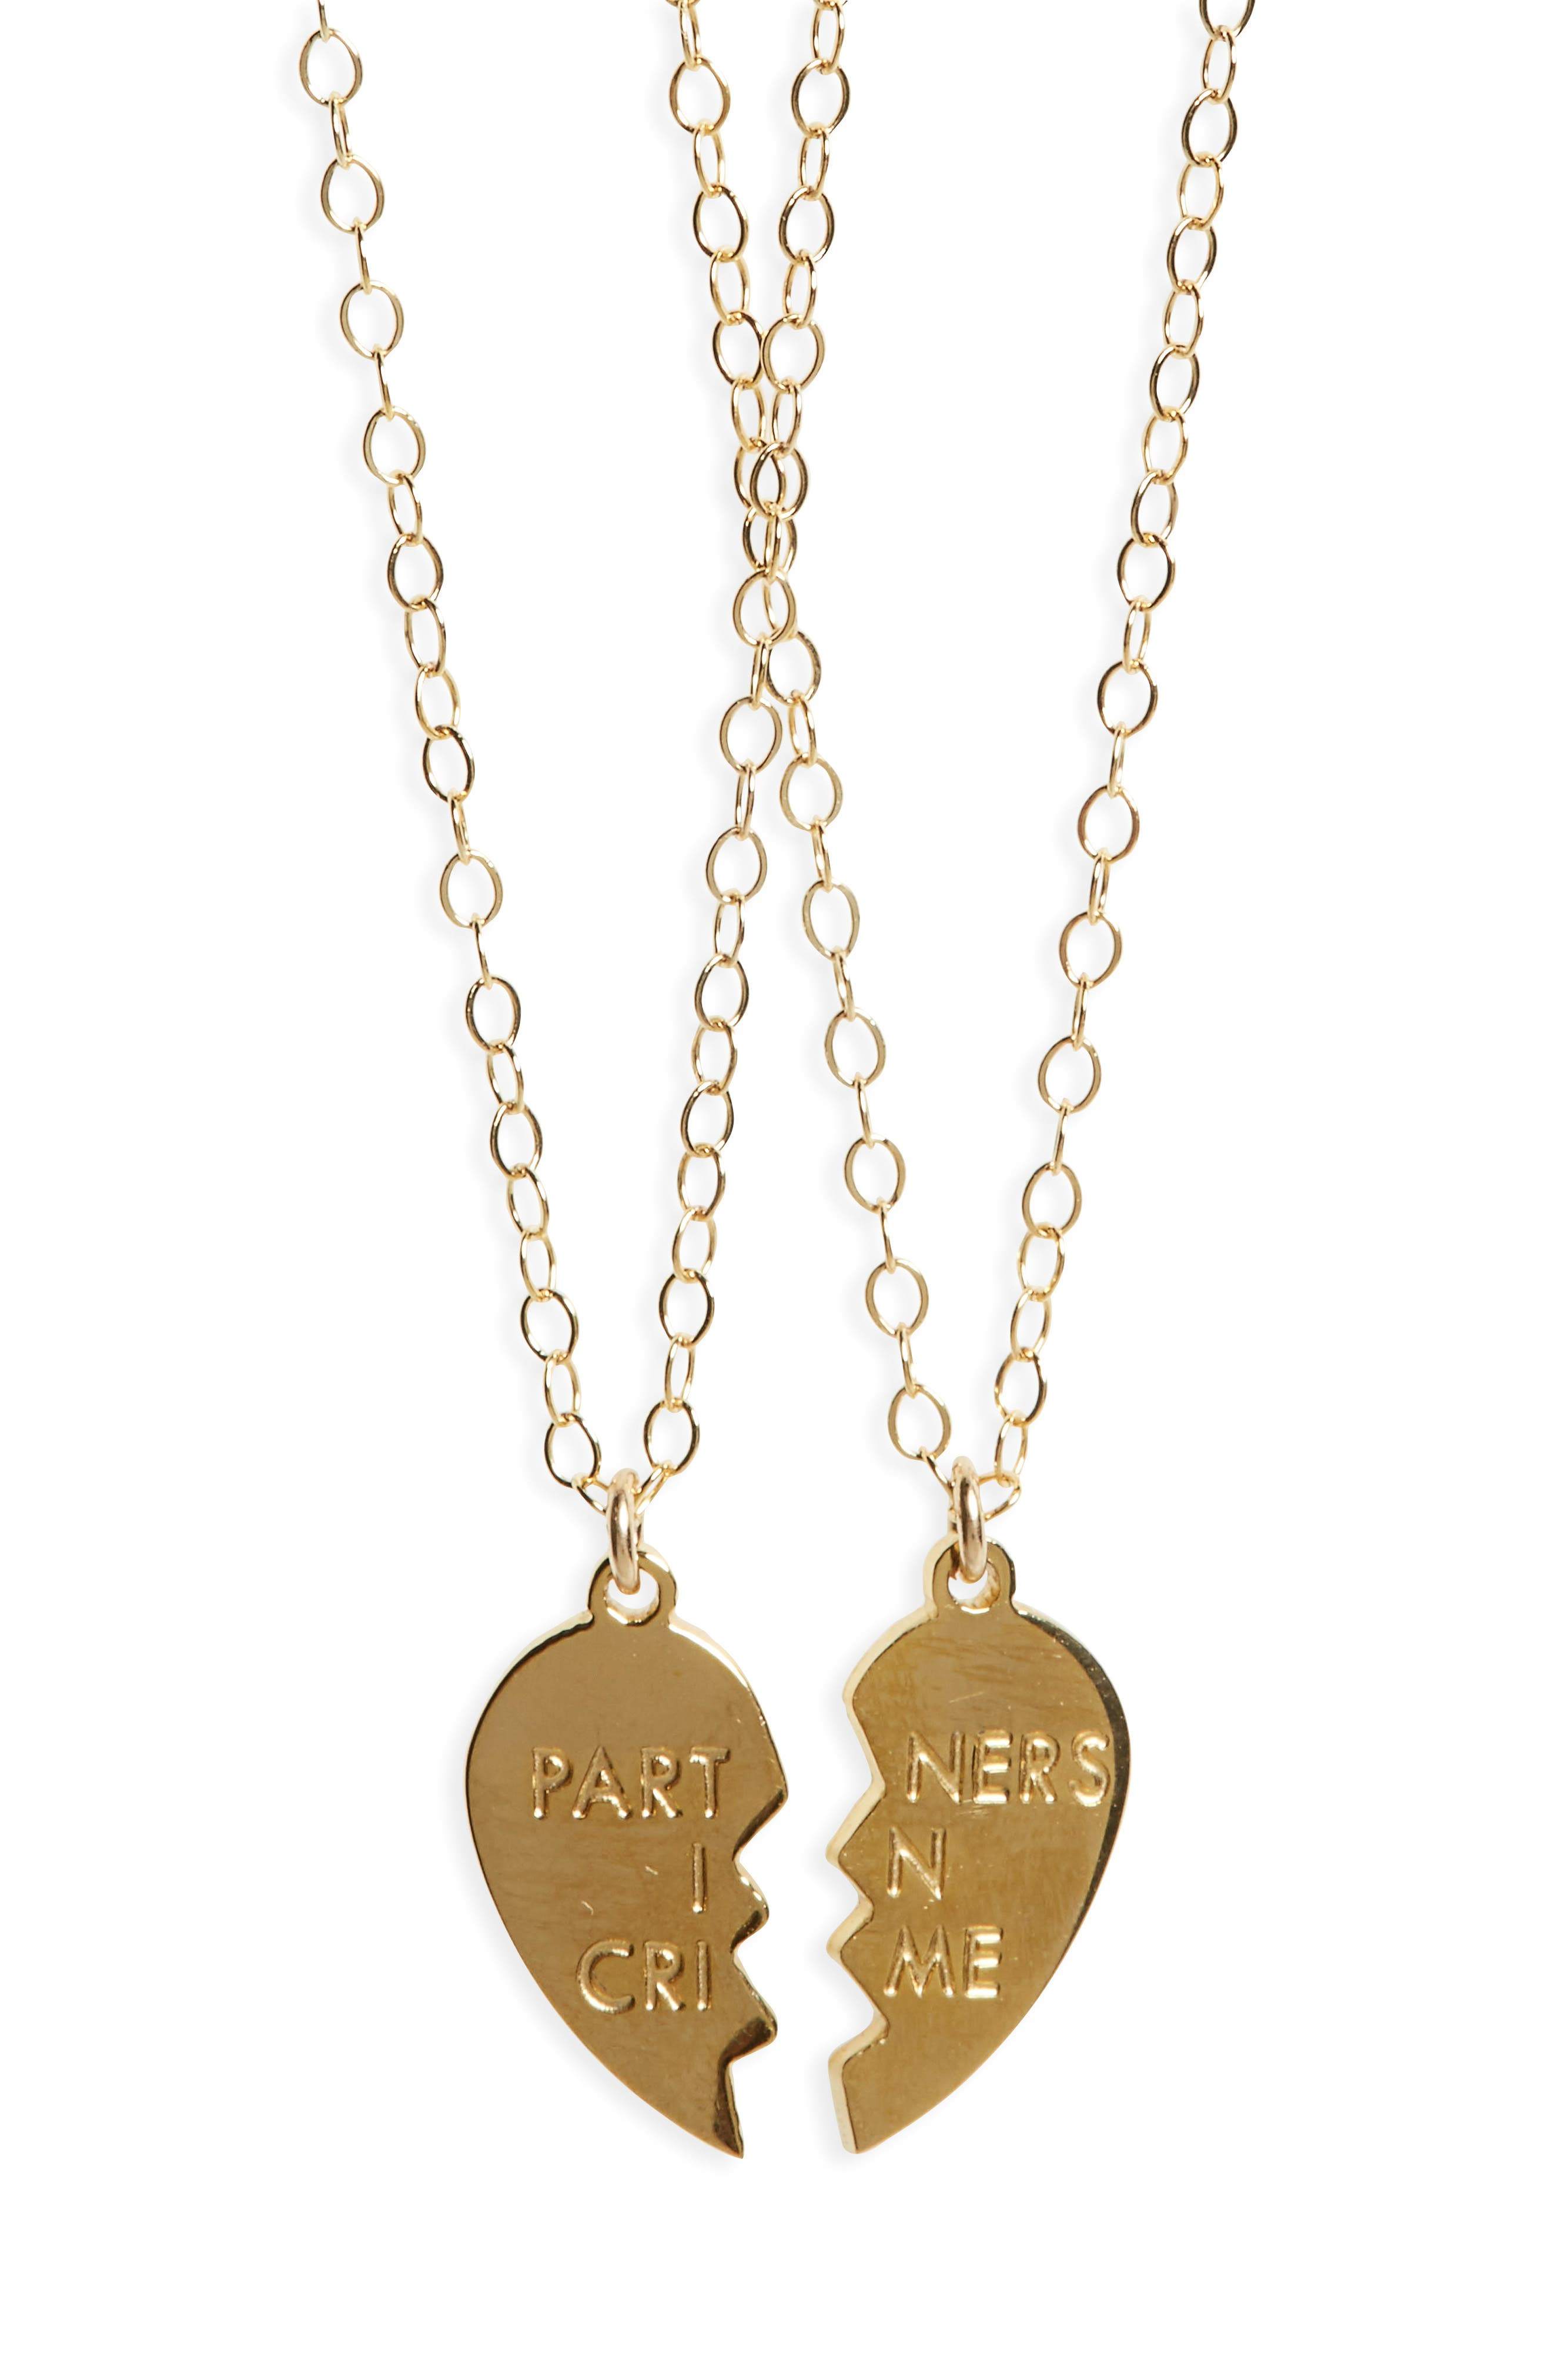 Partners In Crime Necklace Set,                             Main thumbnail 1, color,                             710